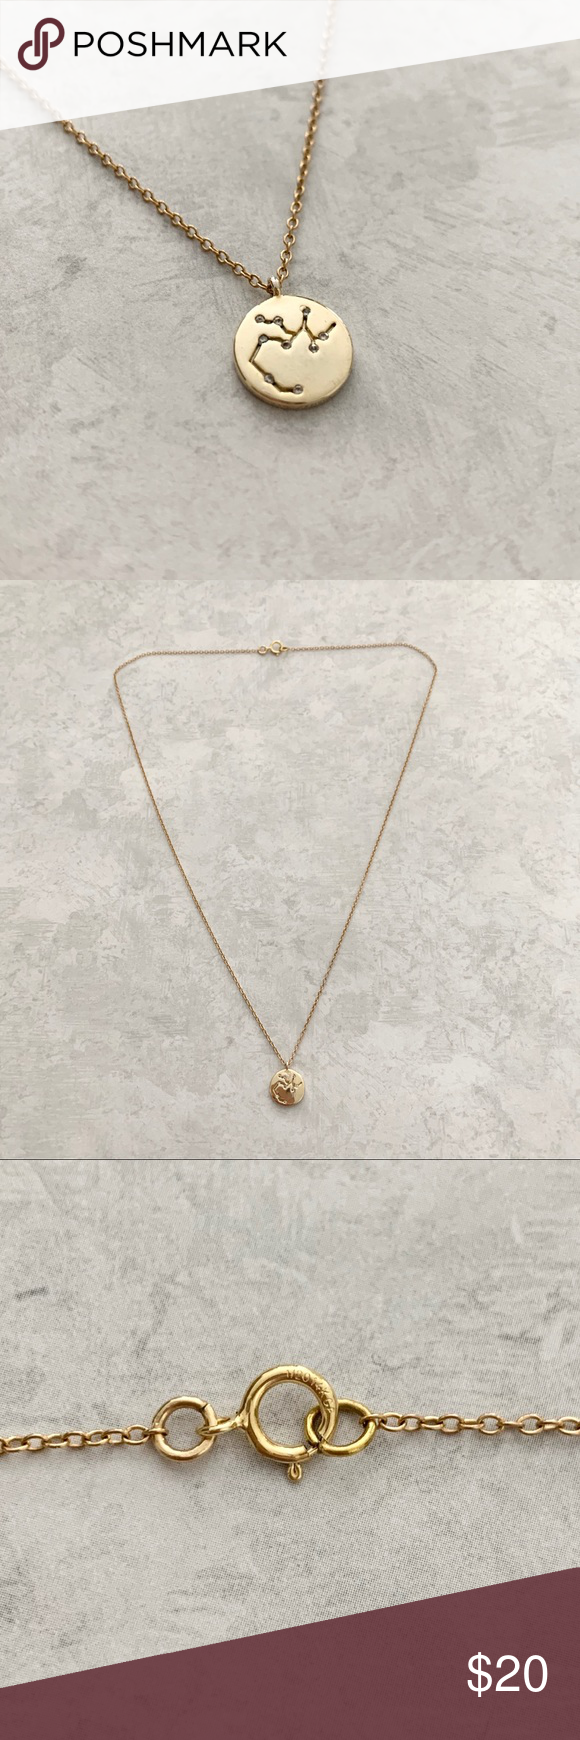 14k Gold Filled Sagittarius Zodiac Necklace Zodiac Necklaces Constellation Necklace Womens Jewelry Necklace